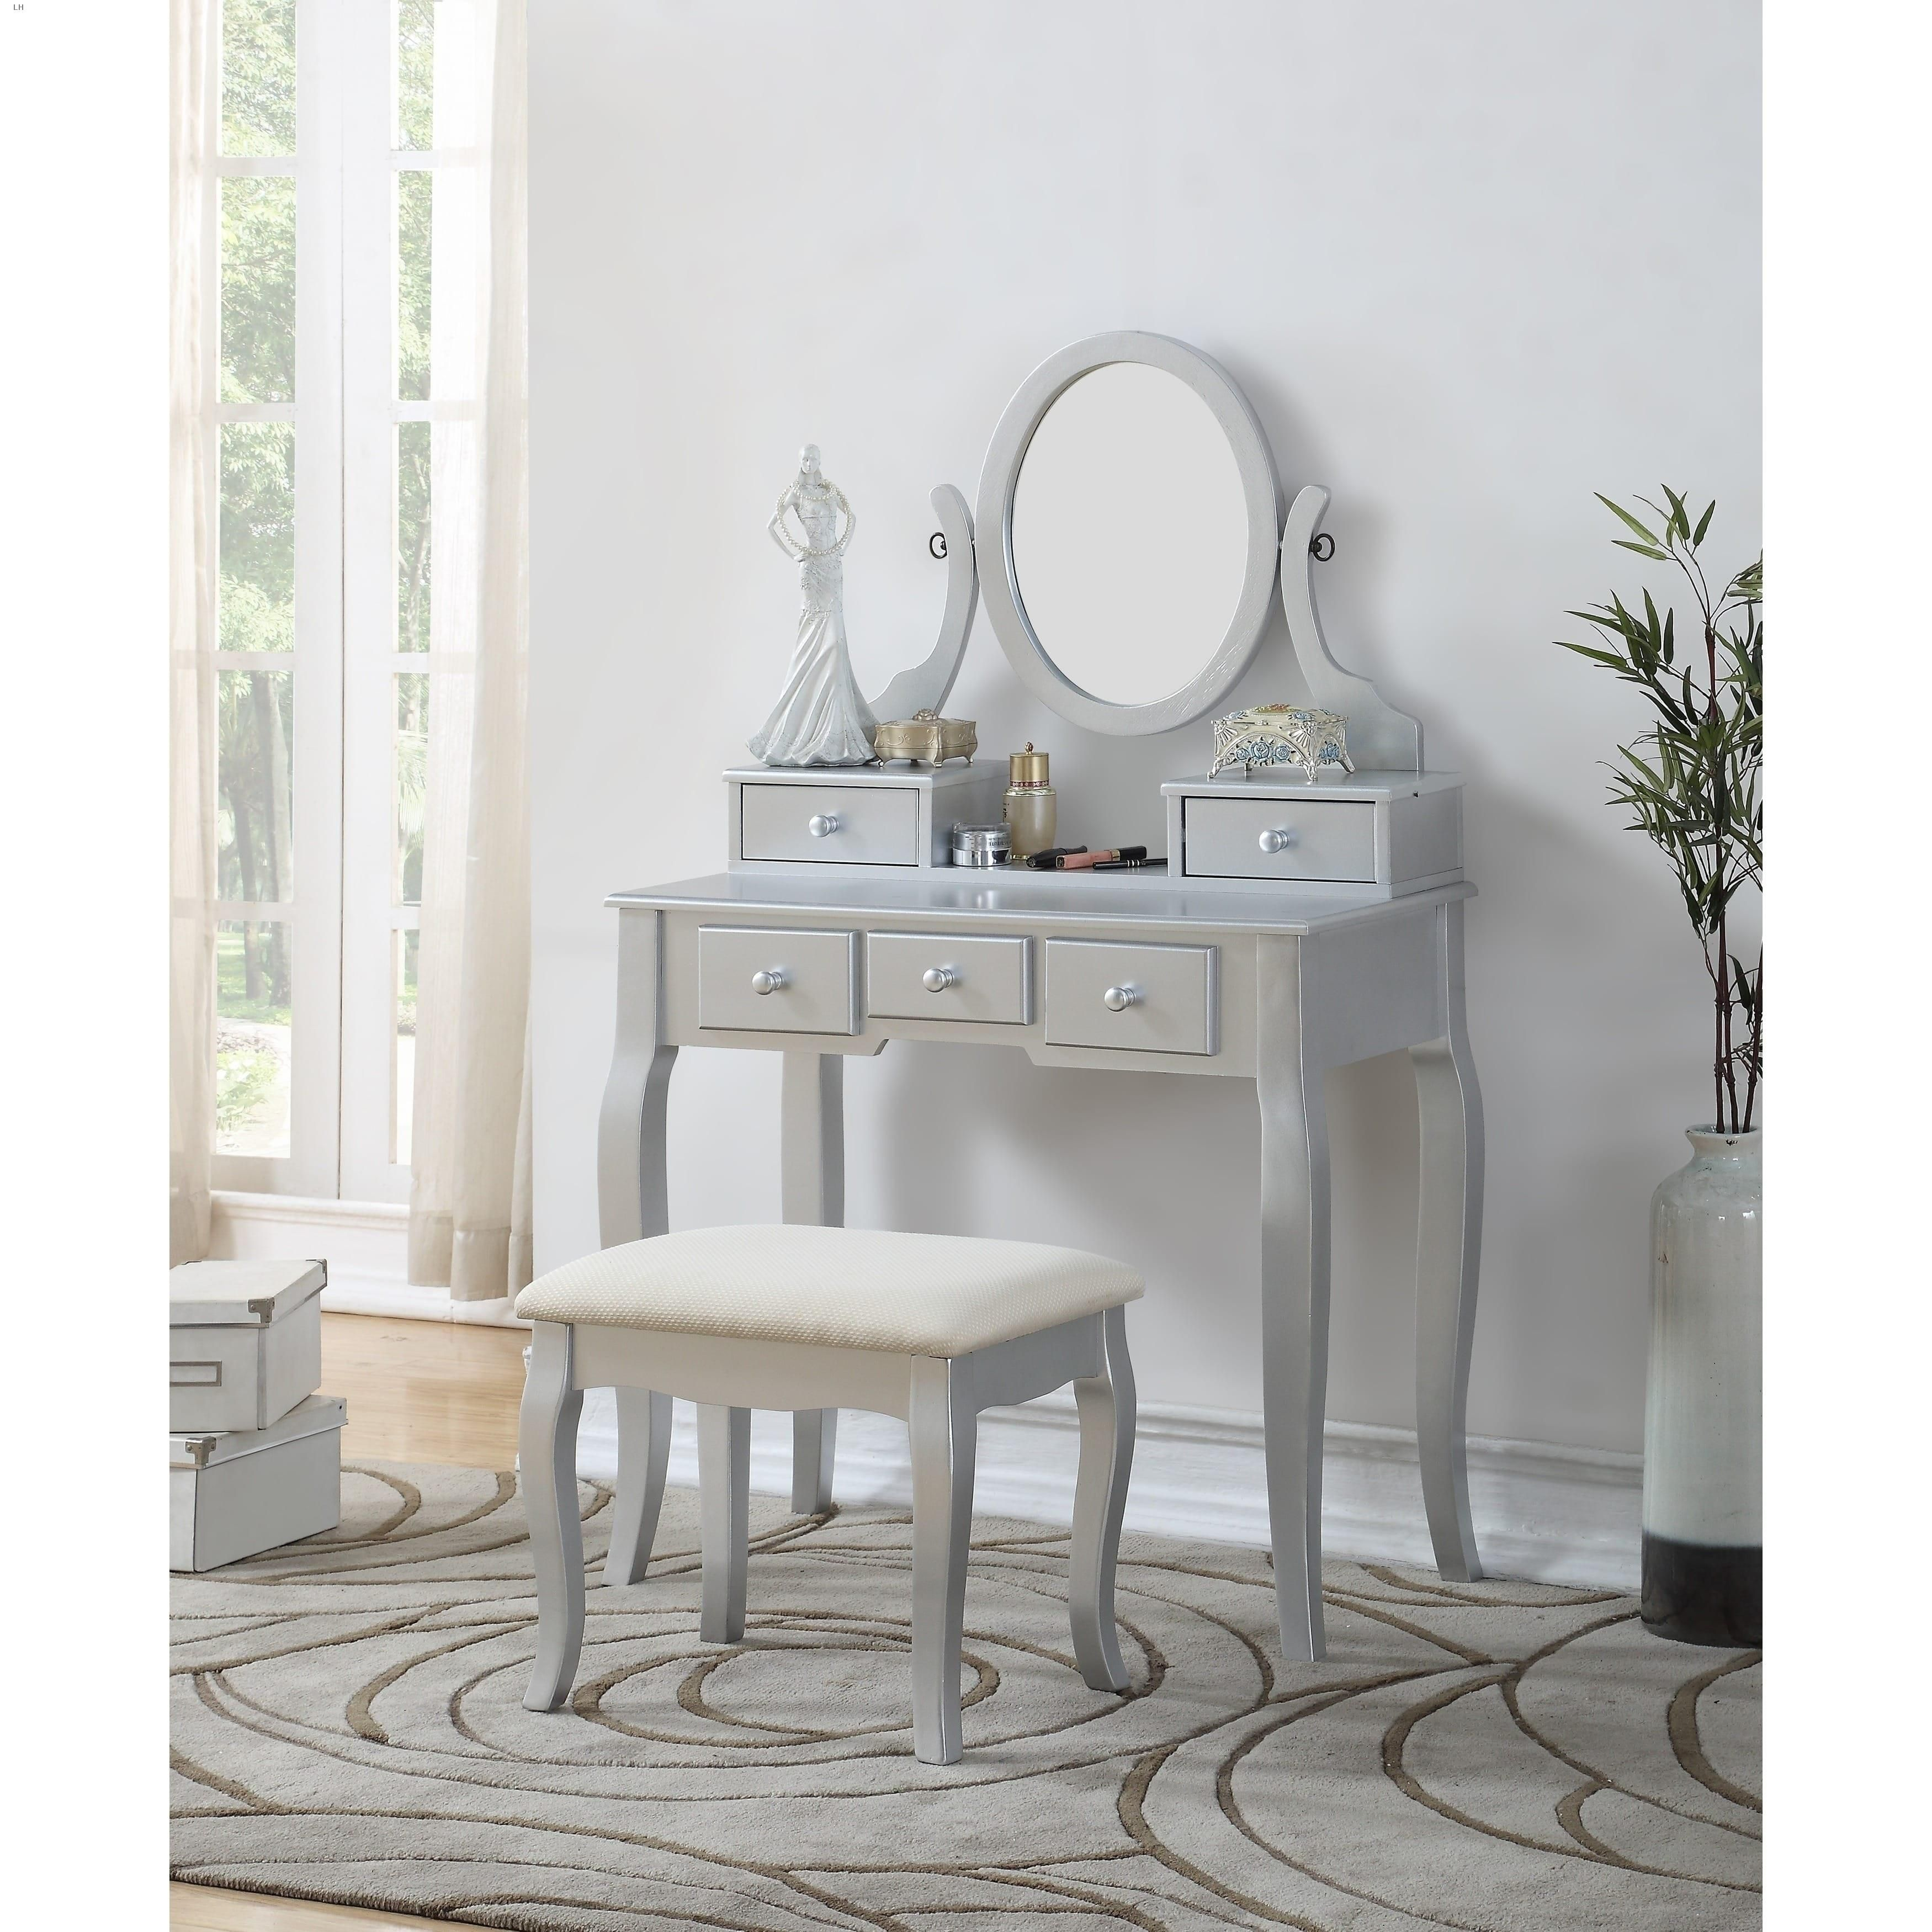 Roundhill Ashley Wood Makeup Vanity Table and Stool Set